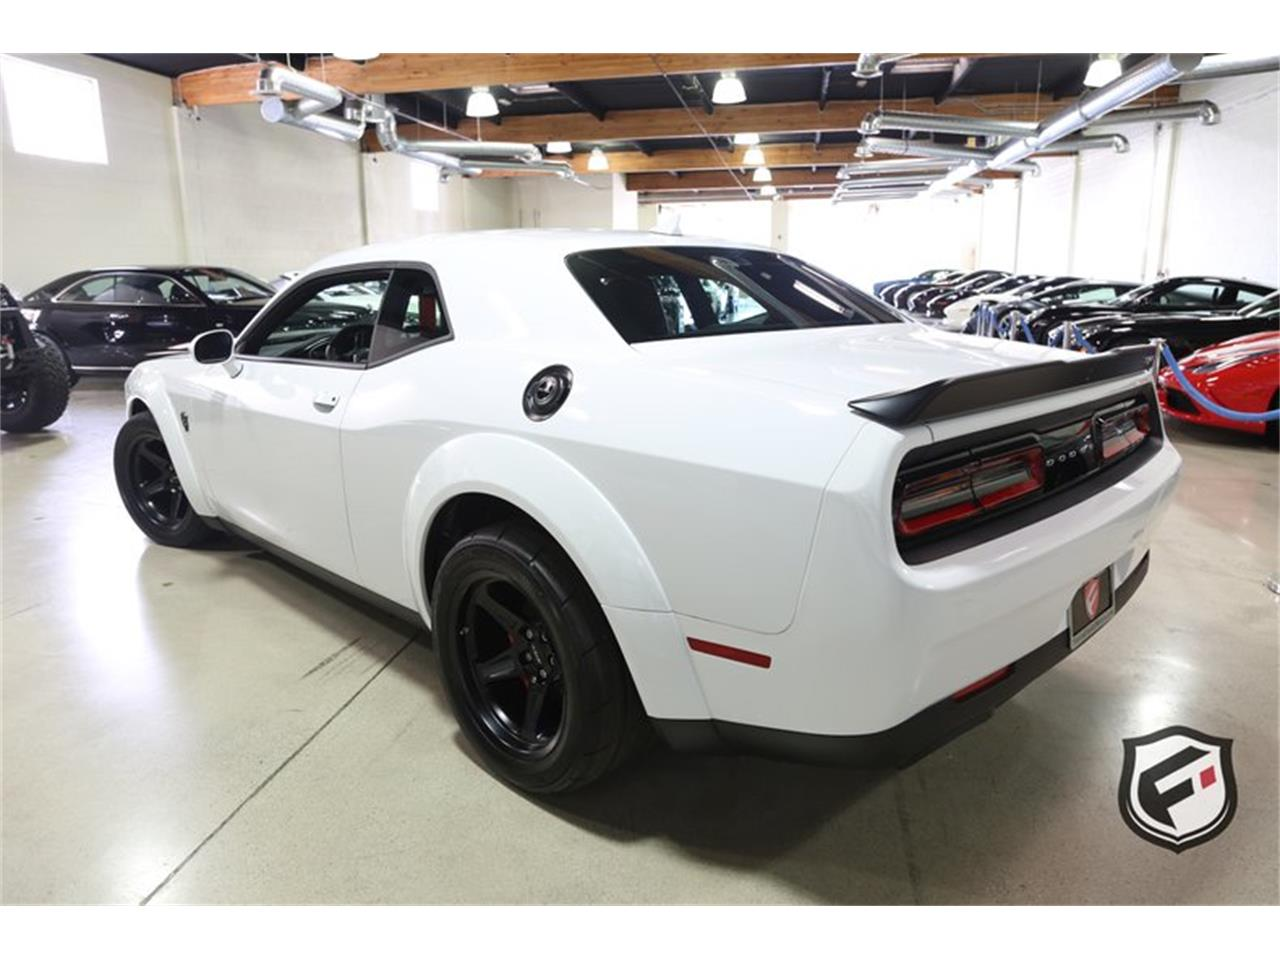 2018 Dodge Challenger for sale in Chatsworth, CA – photo 5